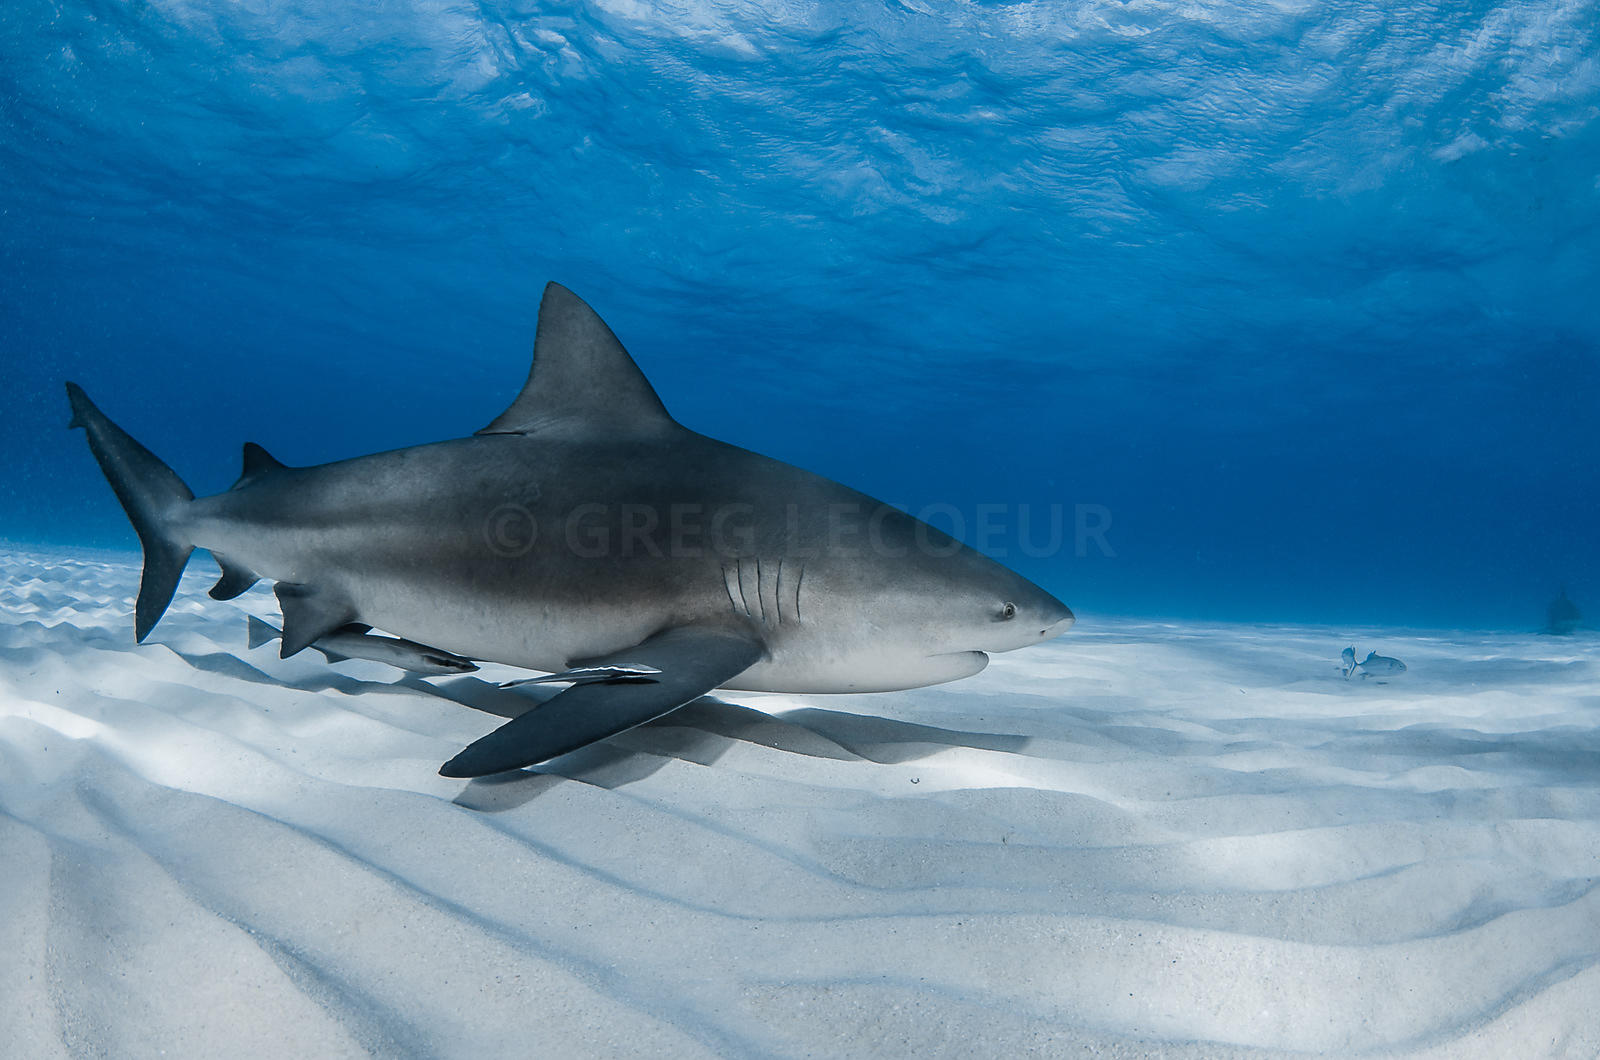 greg lecoeur underwater and wildlife photography